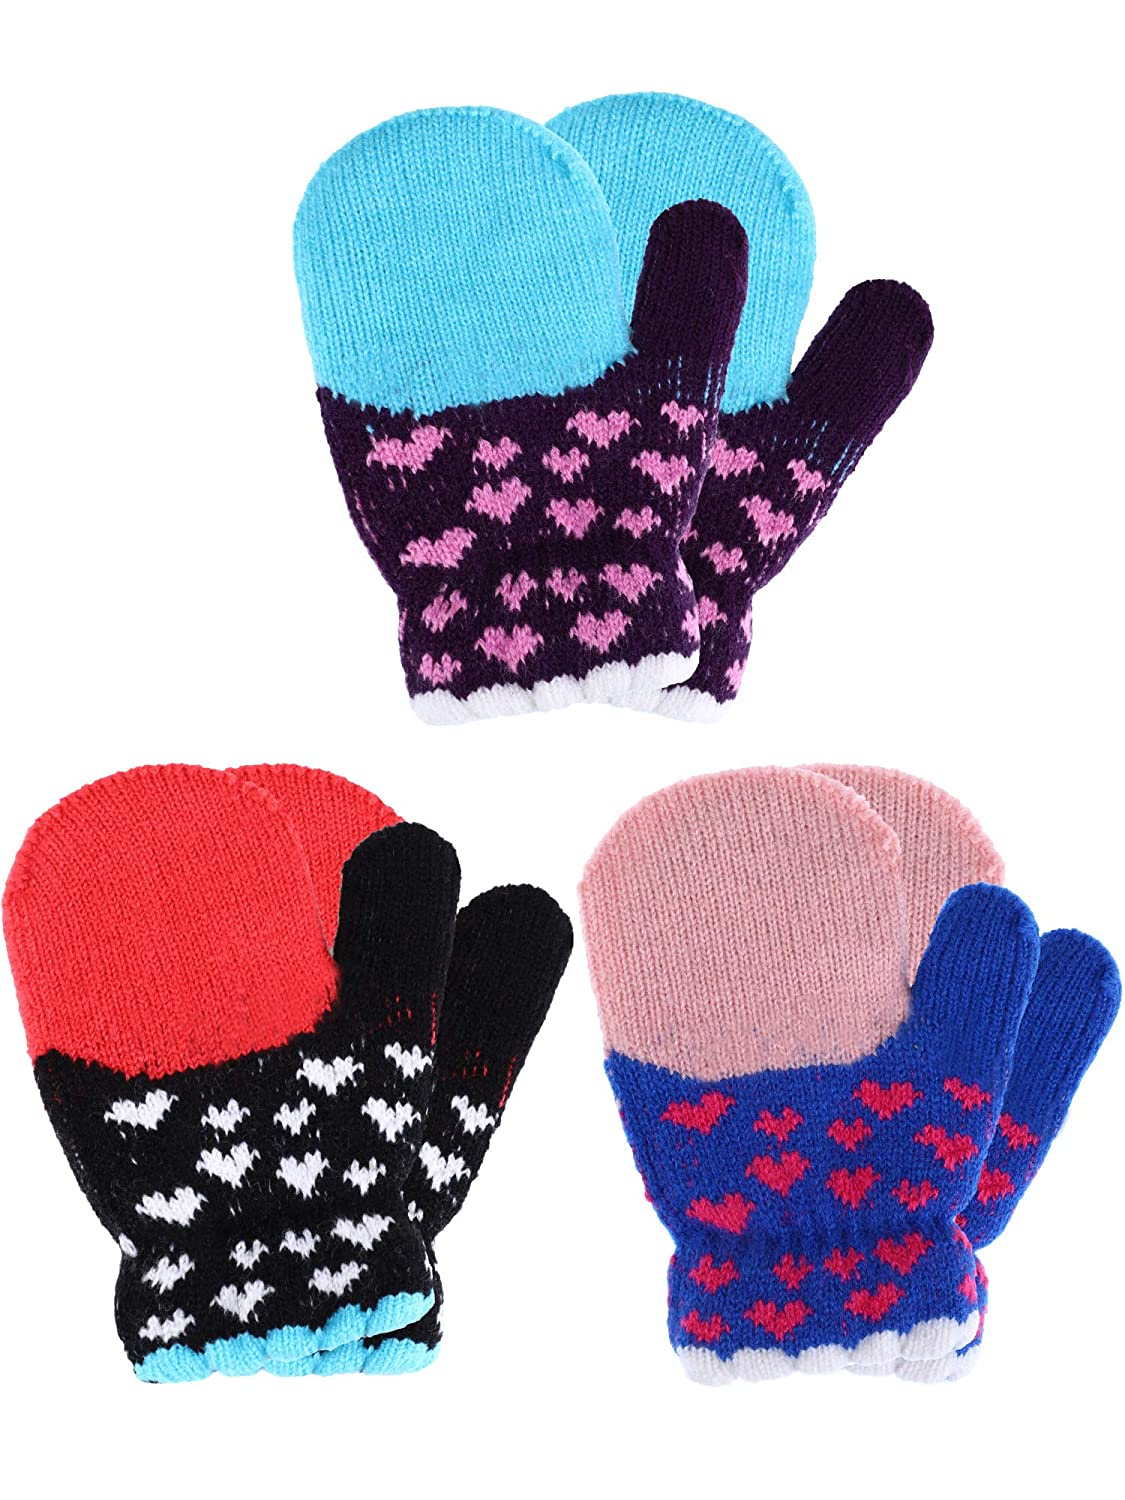 Tatuo 3 Pairs Full Finger Kids Gloves Winter Warm Knitted Mittens Plush Thicken Christmas Gloves for Infant Boys Girls